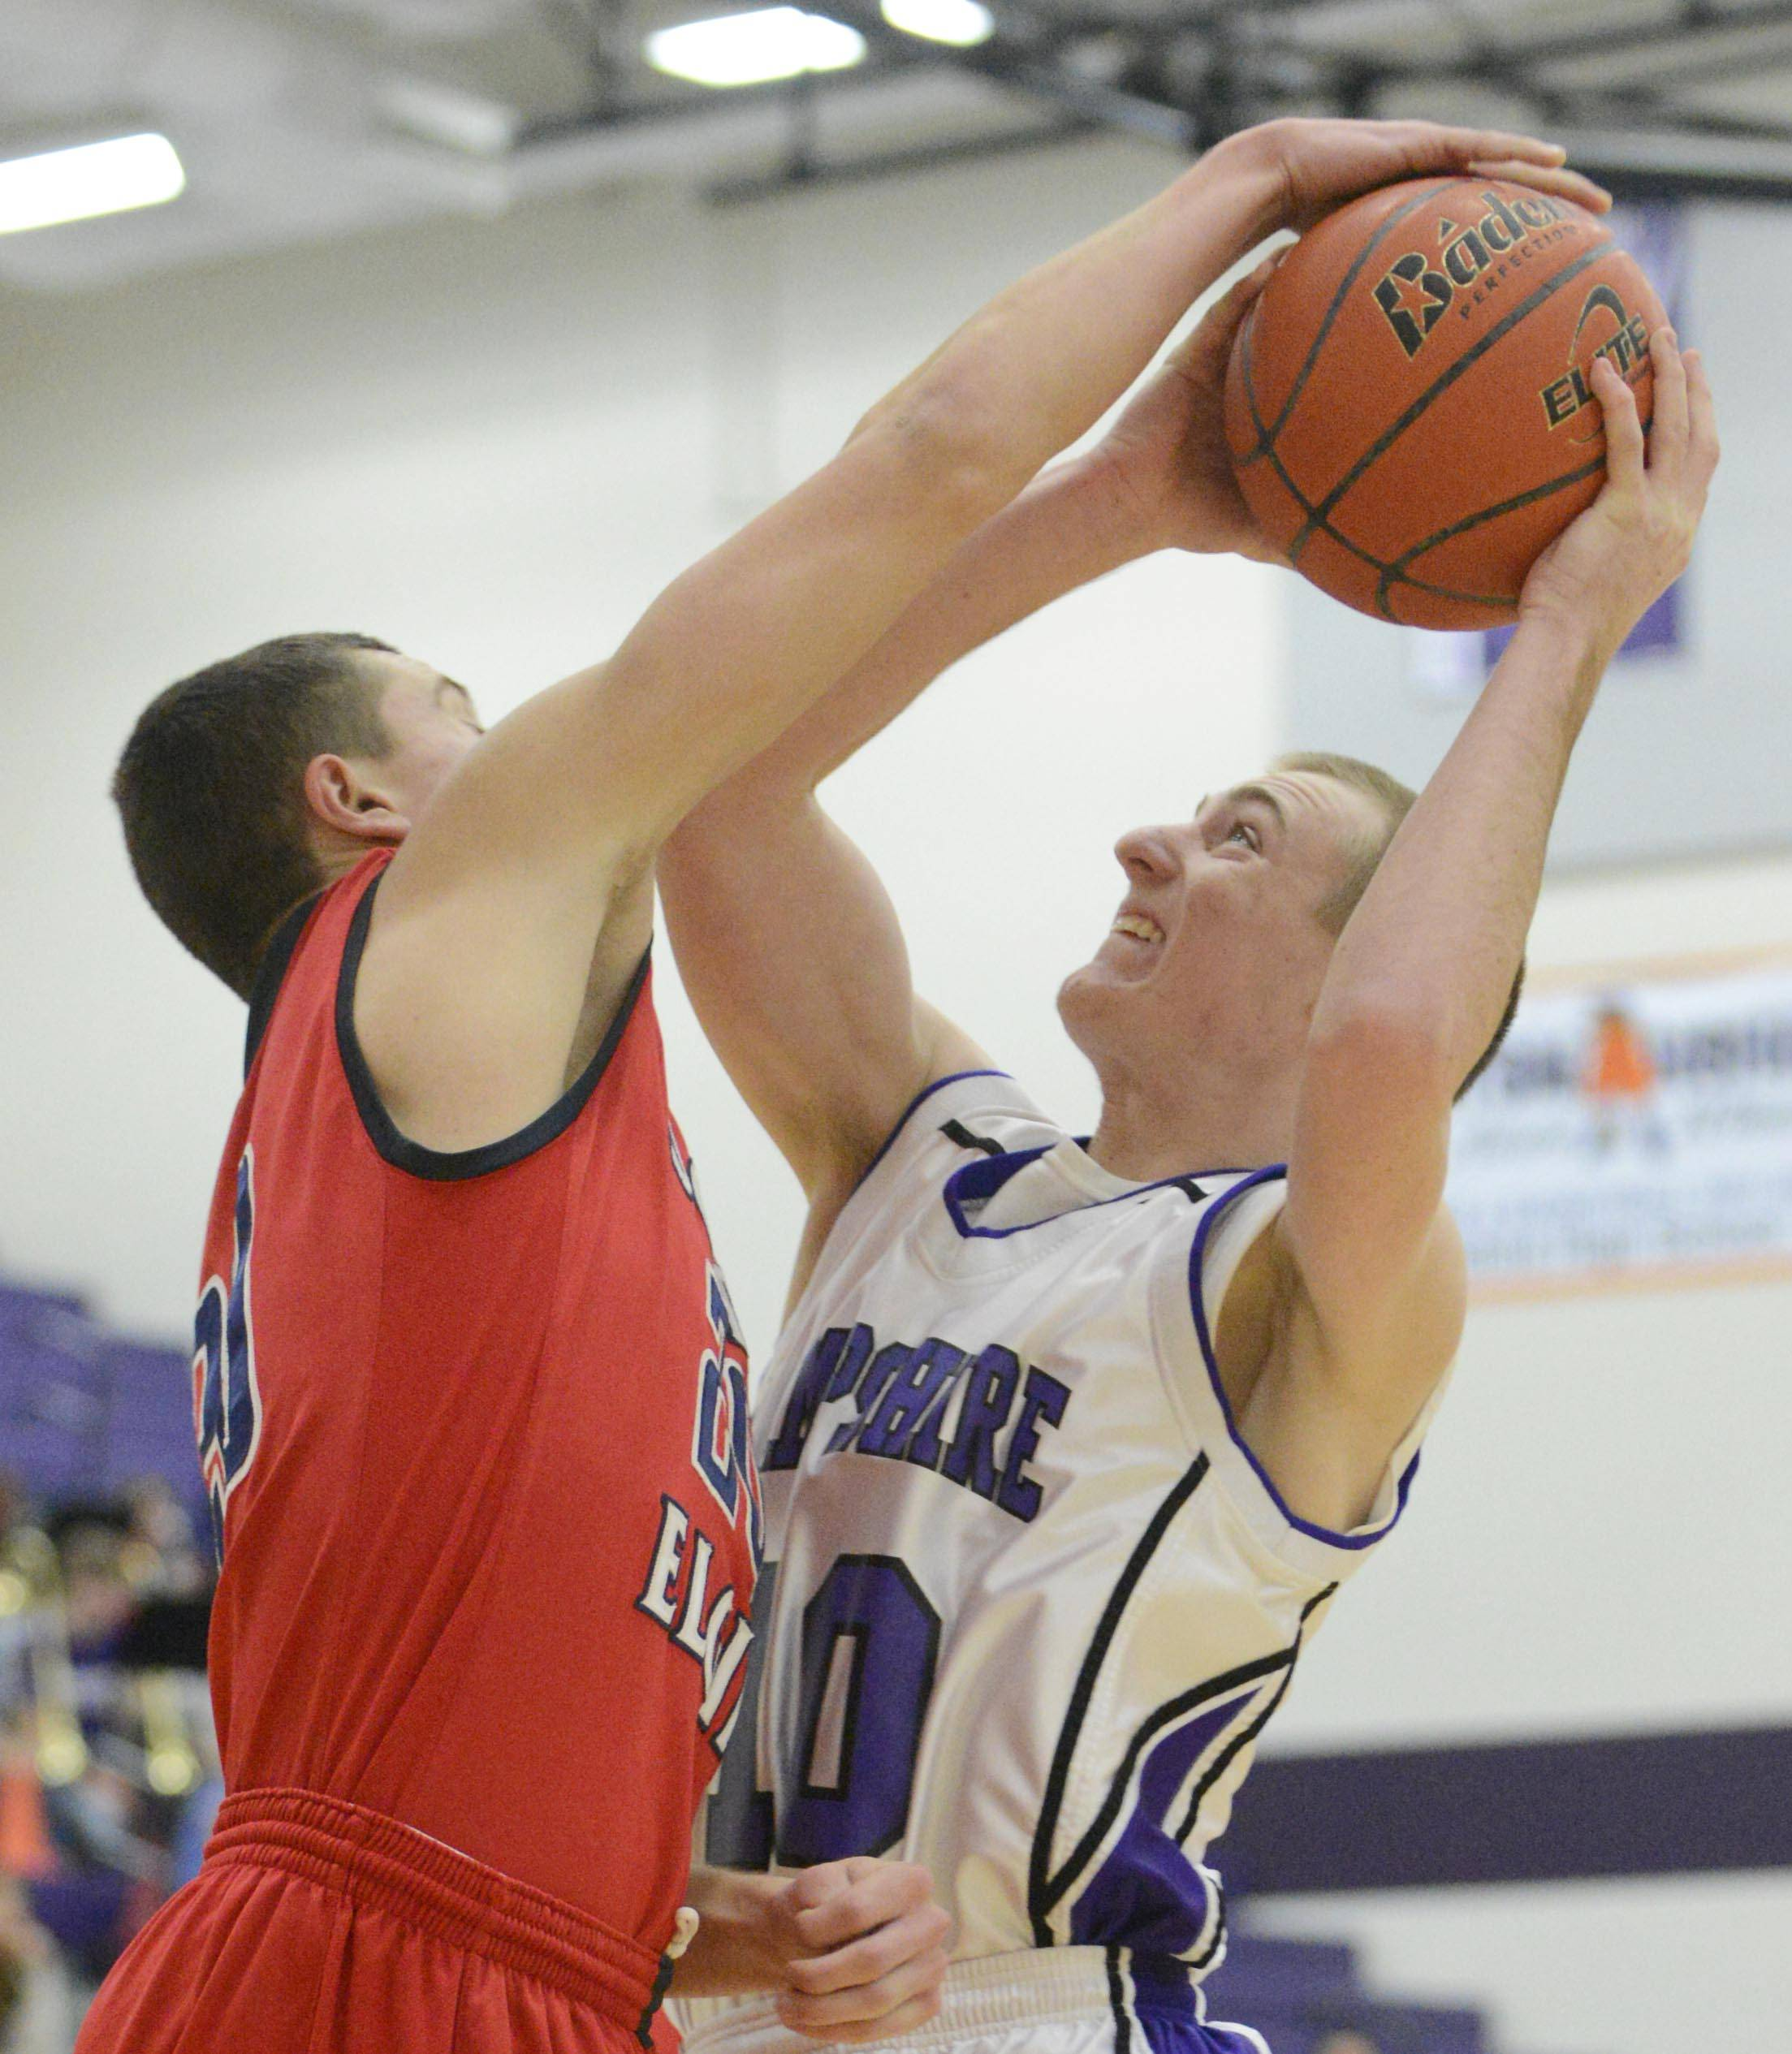 South Elgin's Matt McClure blocks Hampshire's Drew Doran Wednesday in Hampshire.